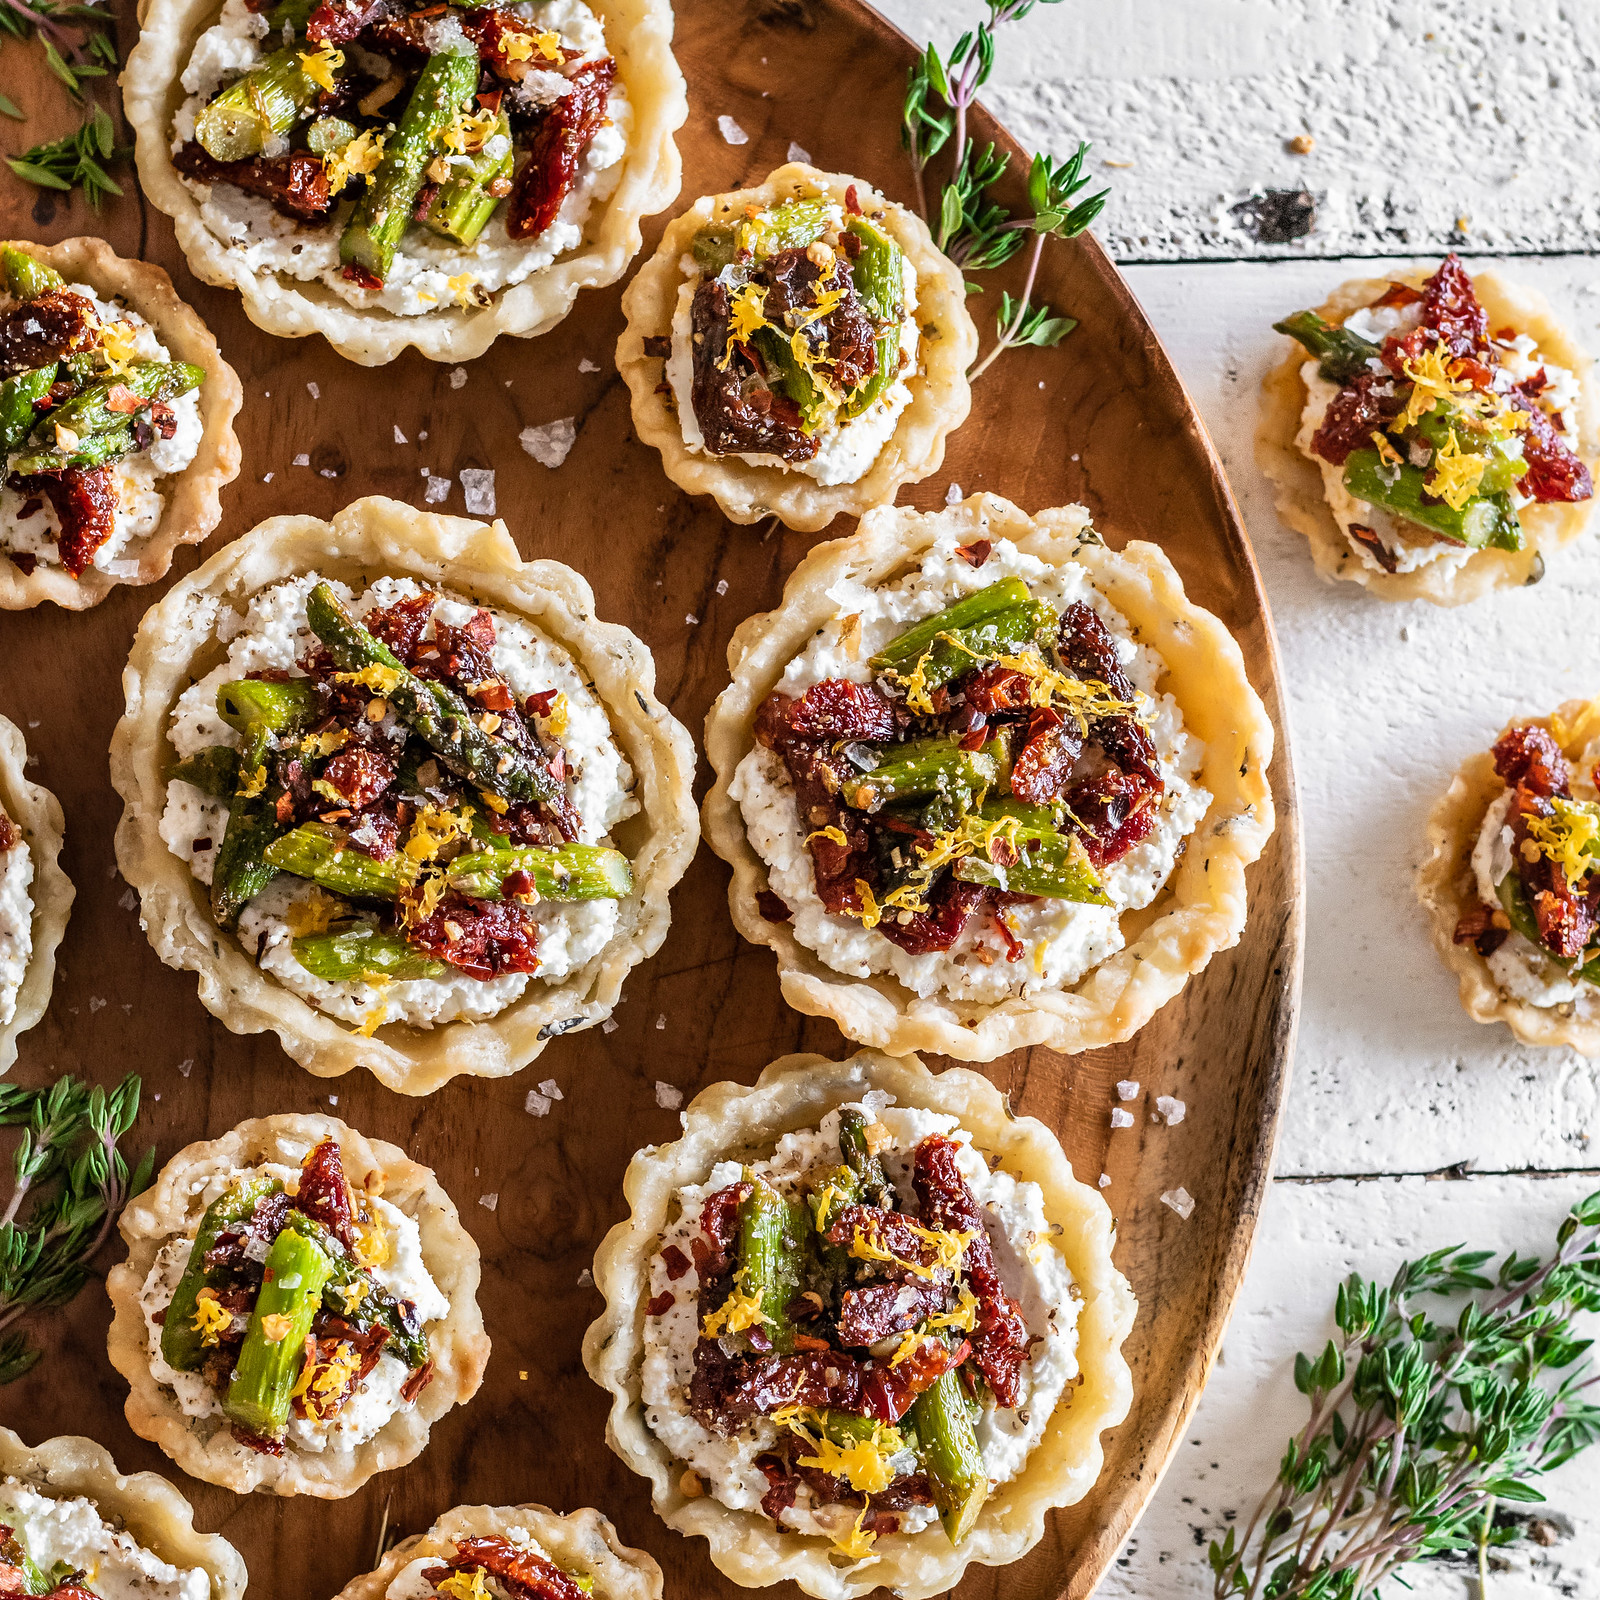 spring tarts with asparagus, sun-dried tomatoes, and goat cheese